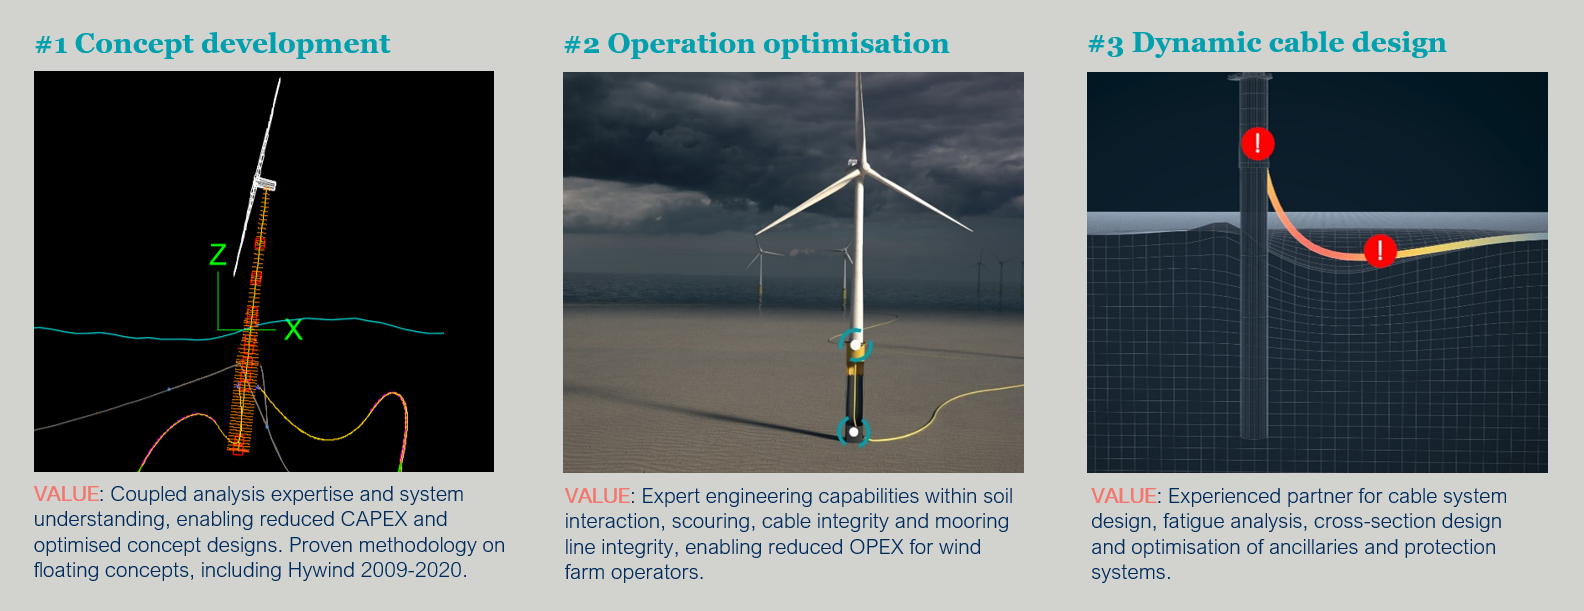 Value Engineering 4Subsea offshore wind